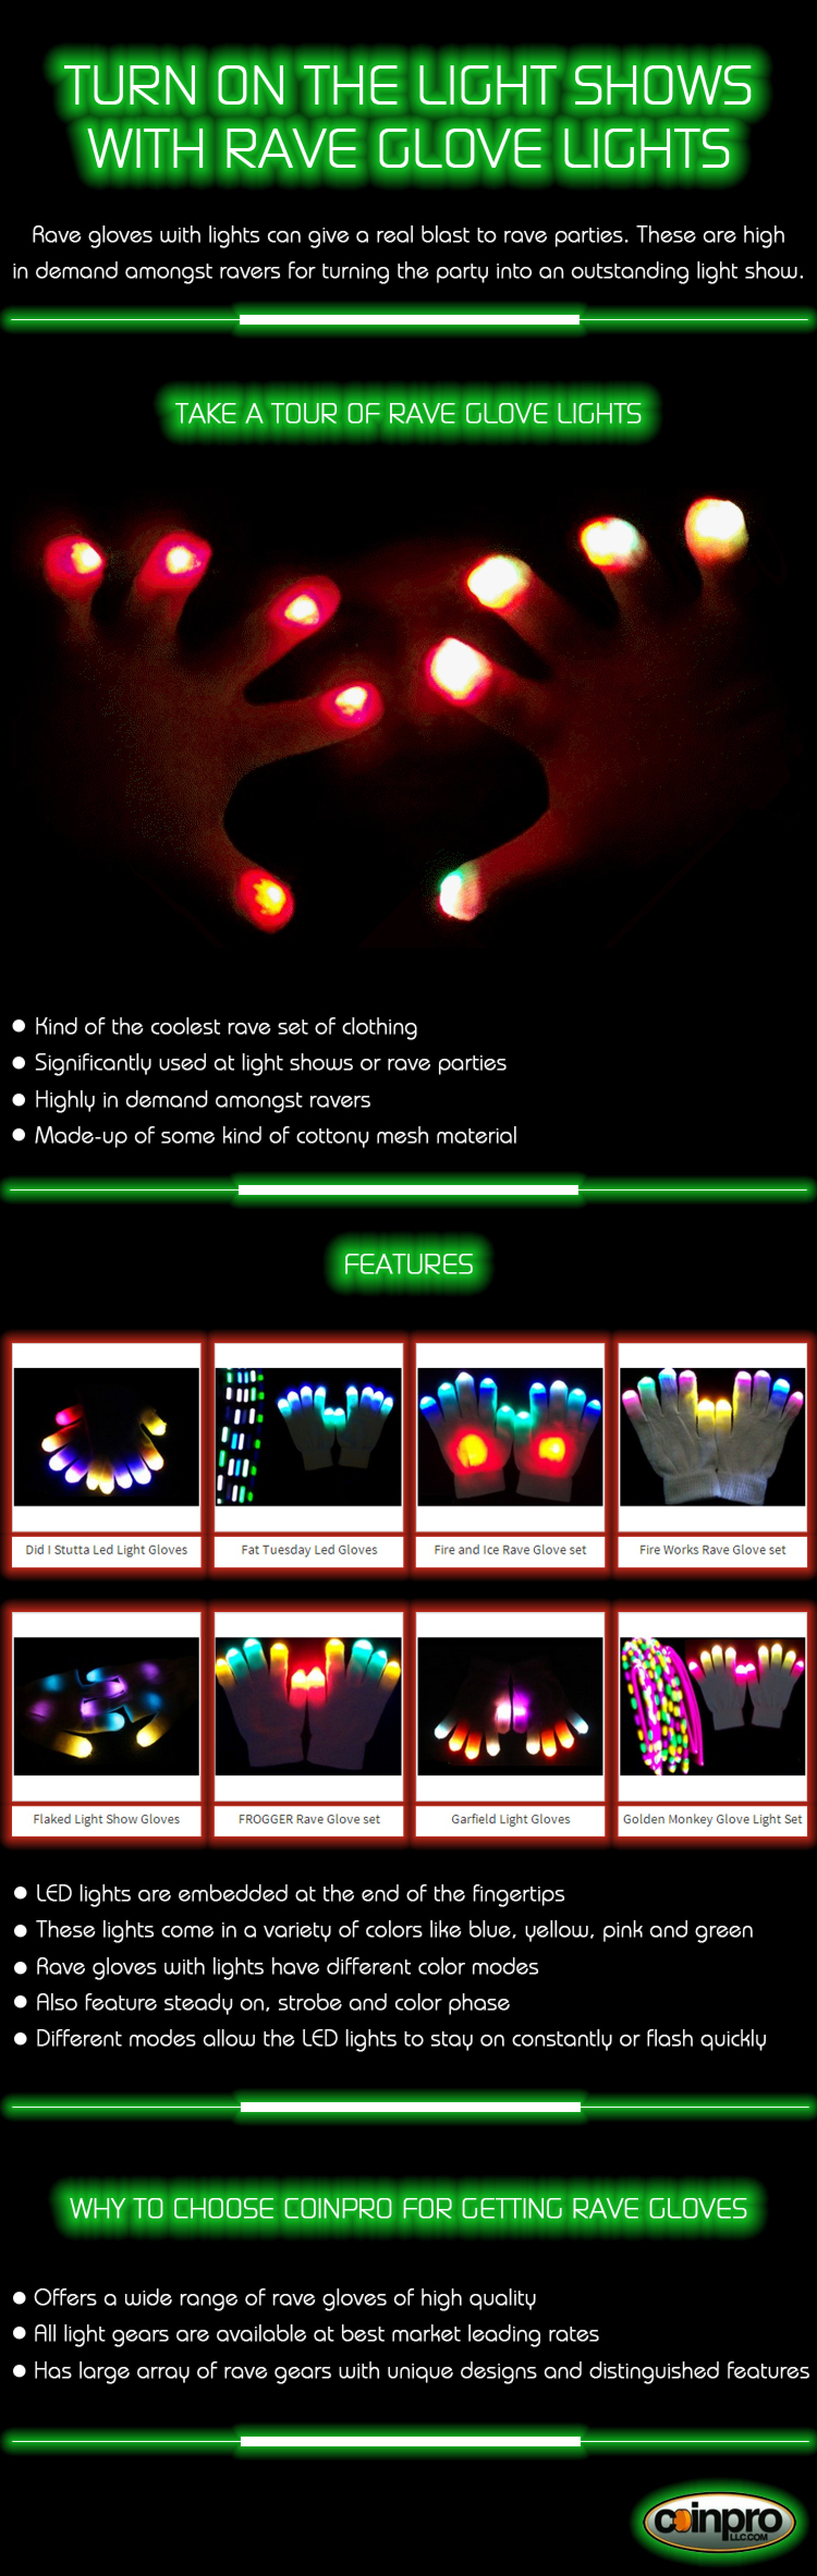 Turn on the light shows with rave glove lights Infographic